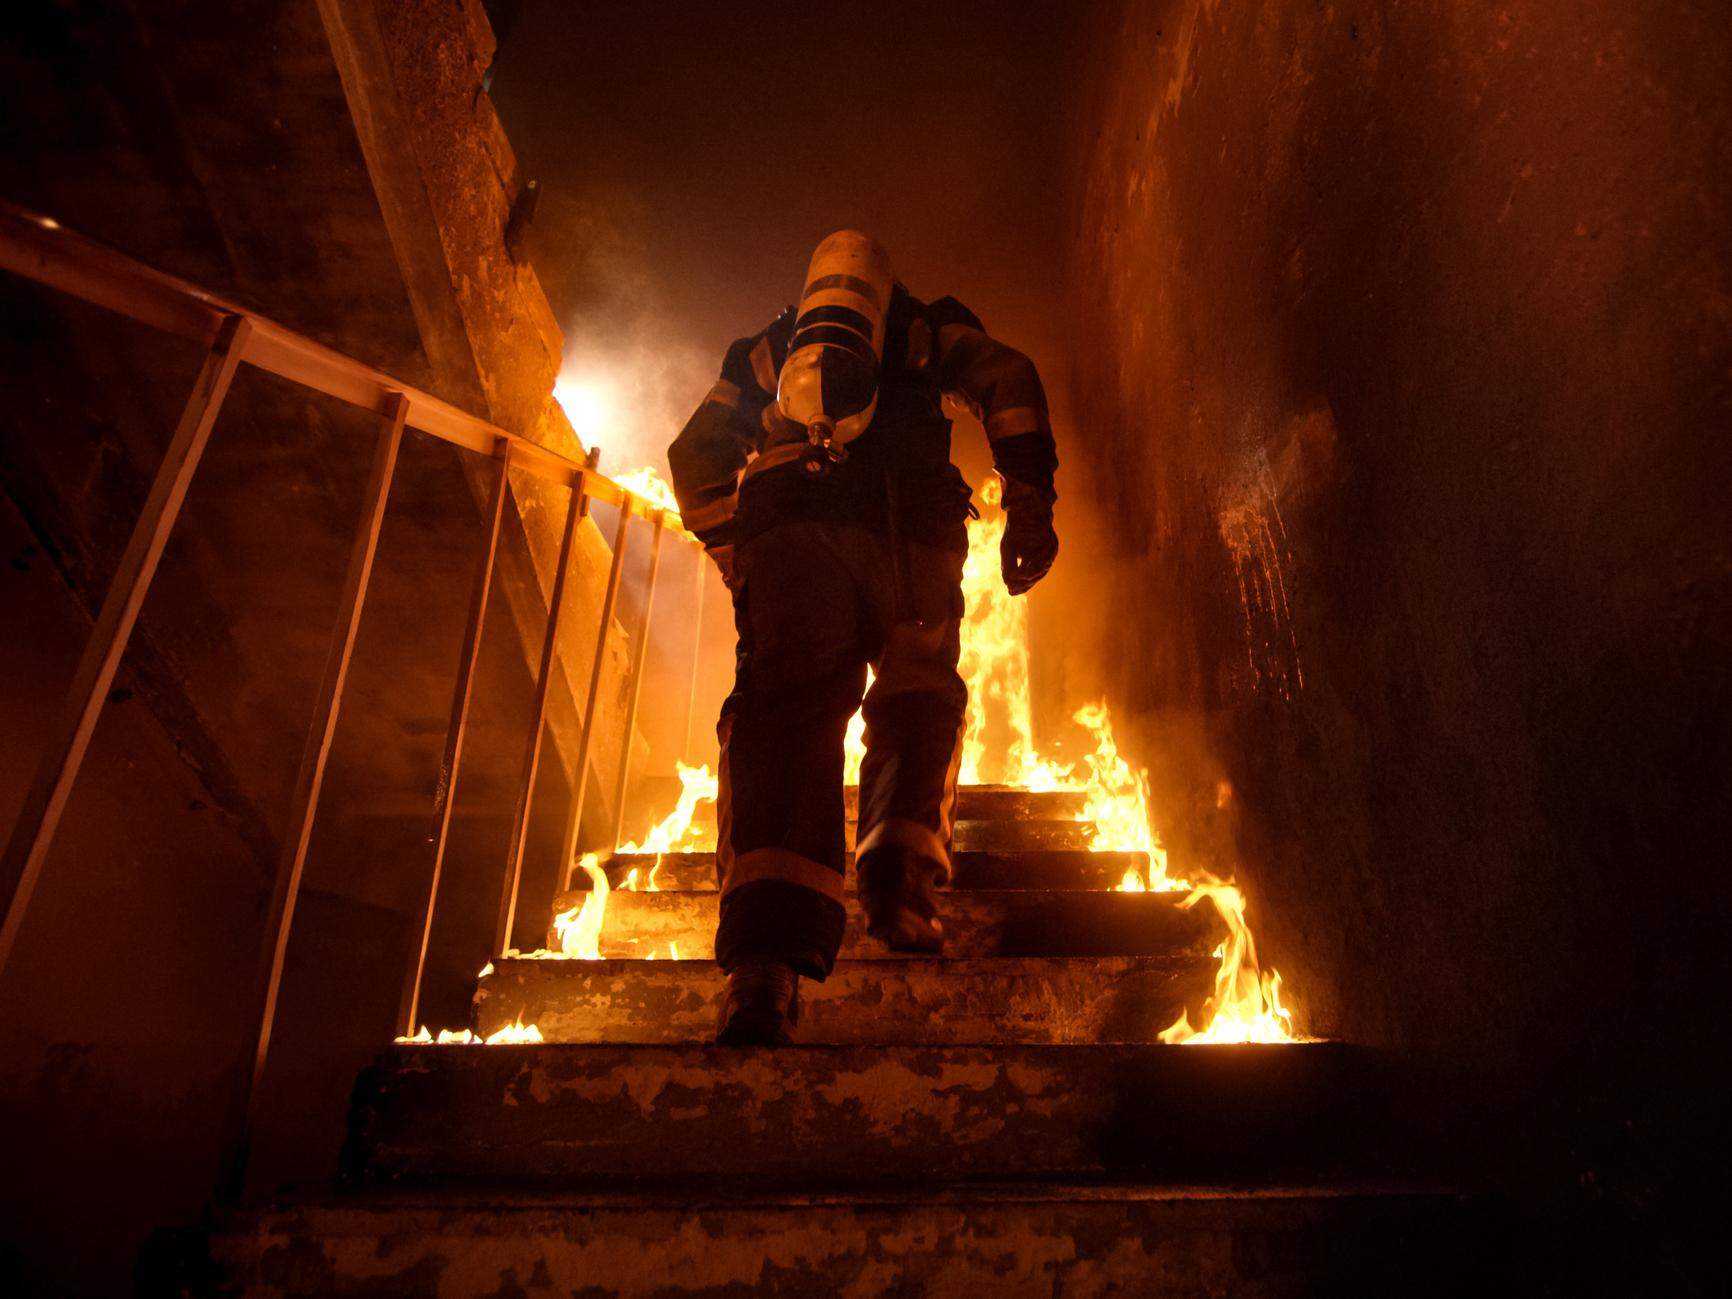 Hundreds of fire deaths may be linked to skin creams, senior firefighter warns